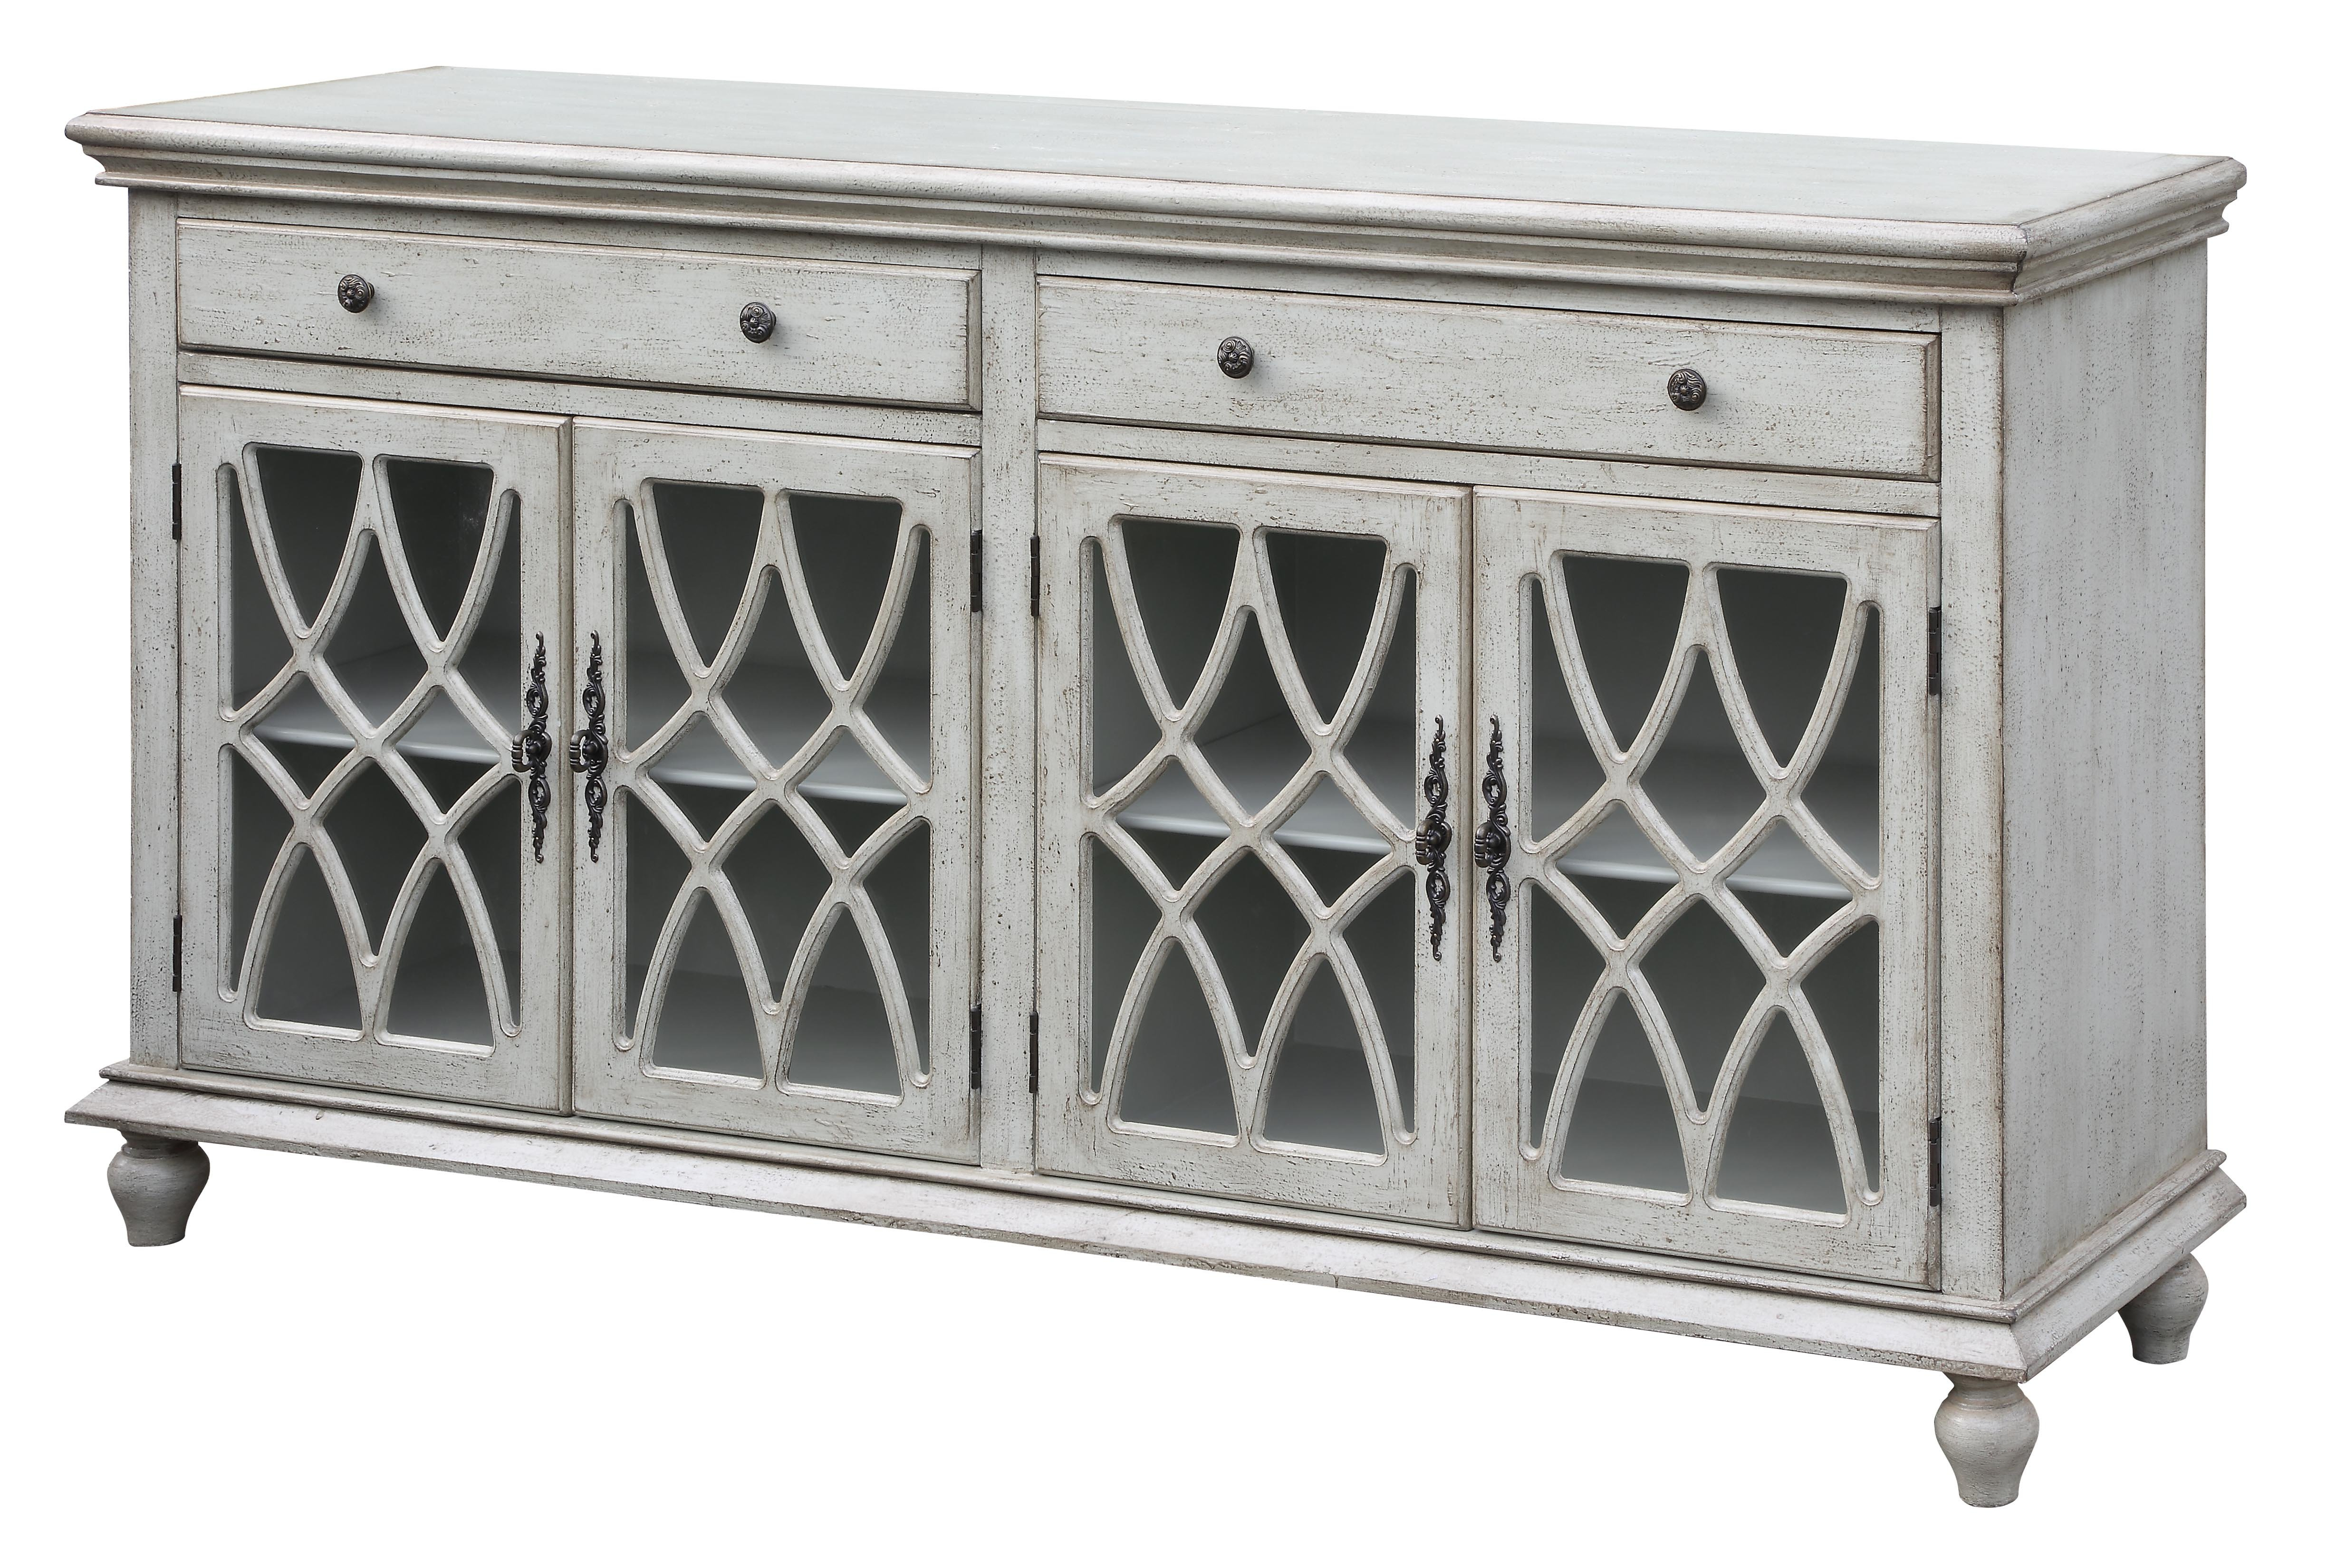 Grey Sideboards & Buffets | Joss & Main Intended For Casolino Sideboards (View 8 of 20)